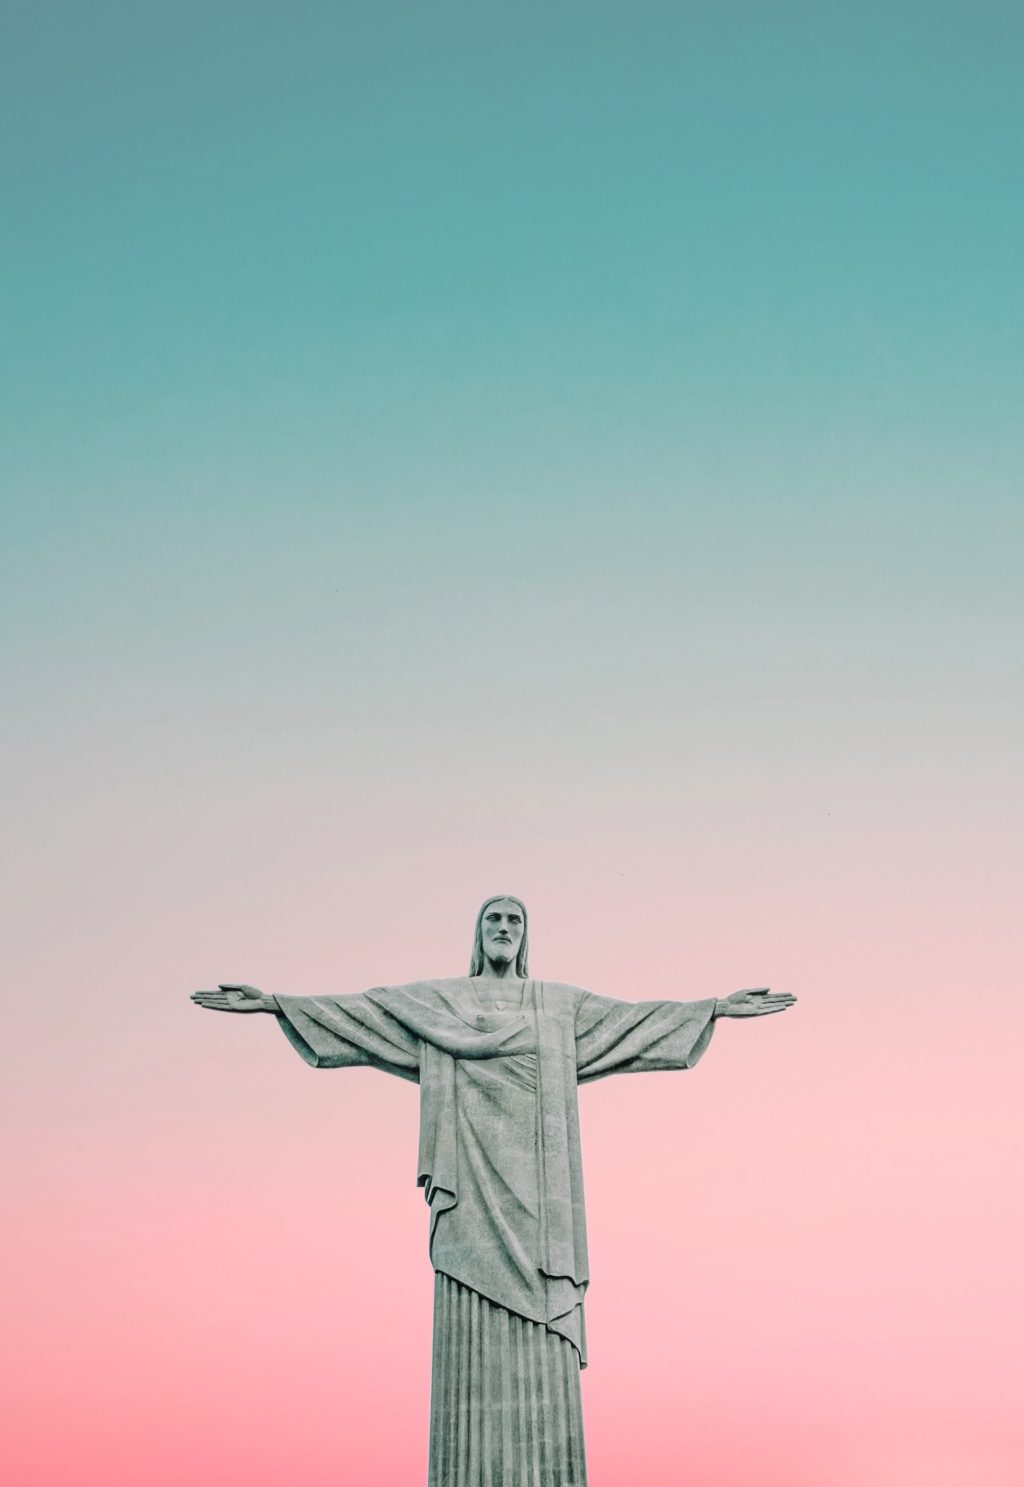 try minimal compositions to bring emphasis to the statue or sculpture